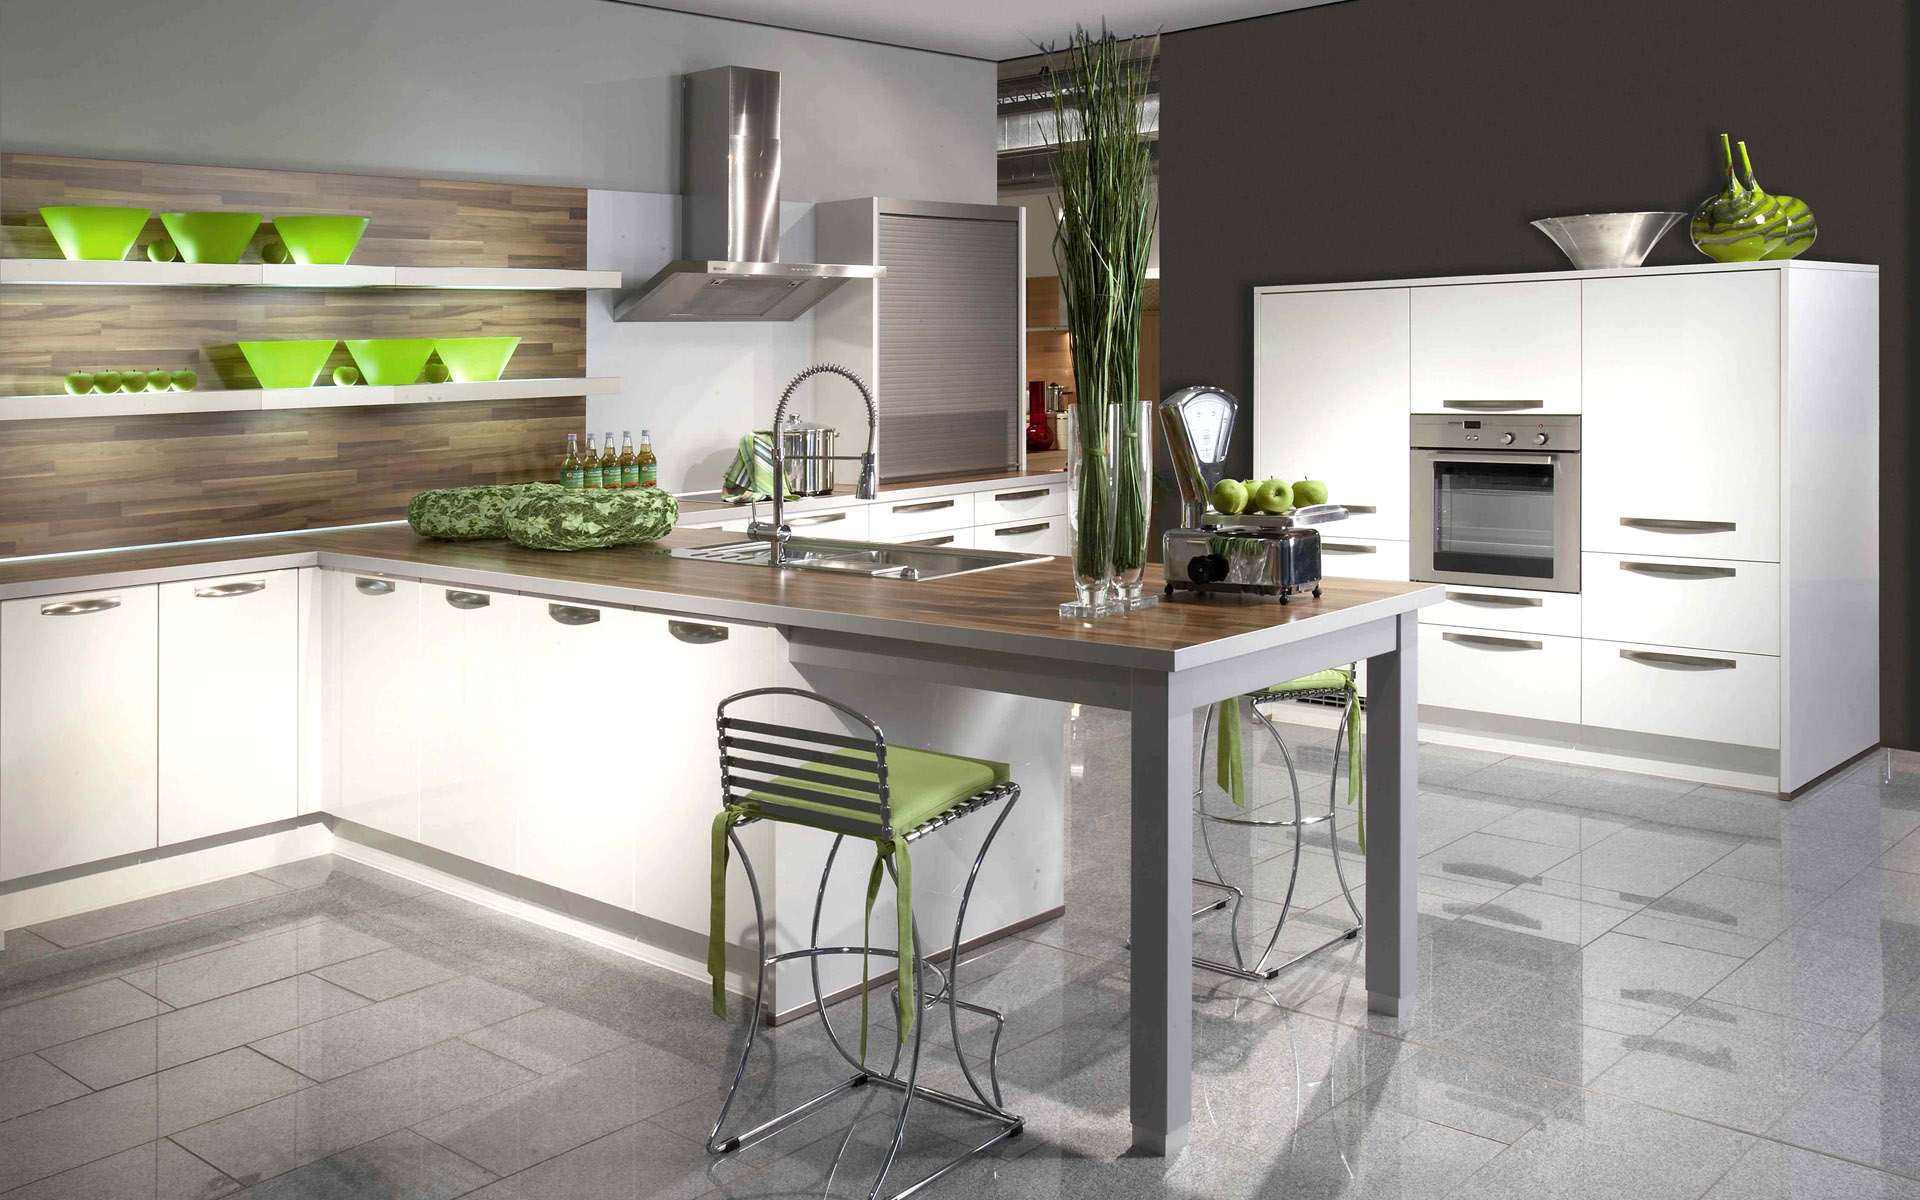 Green White And Gray Kitchen Idea Interior Design Ideas